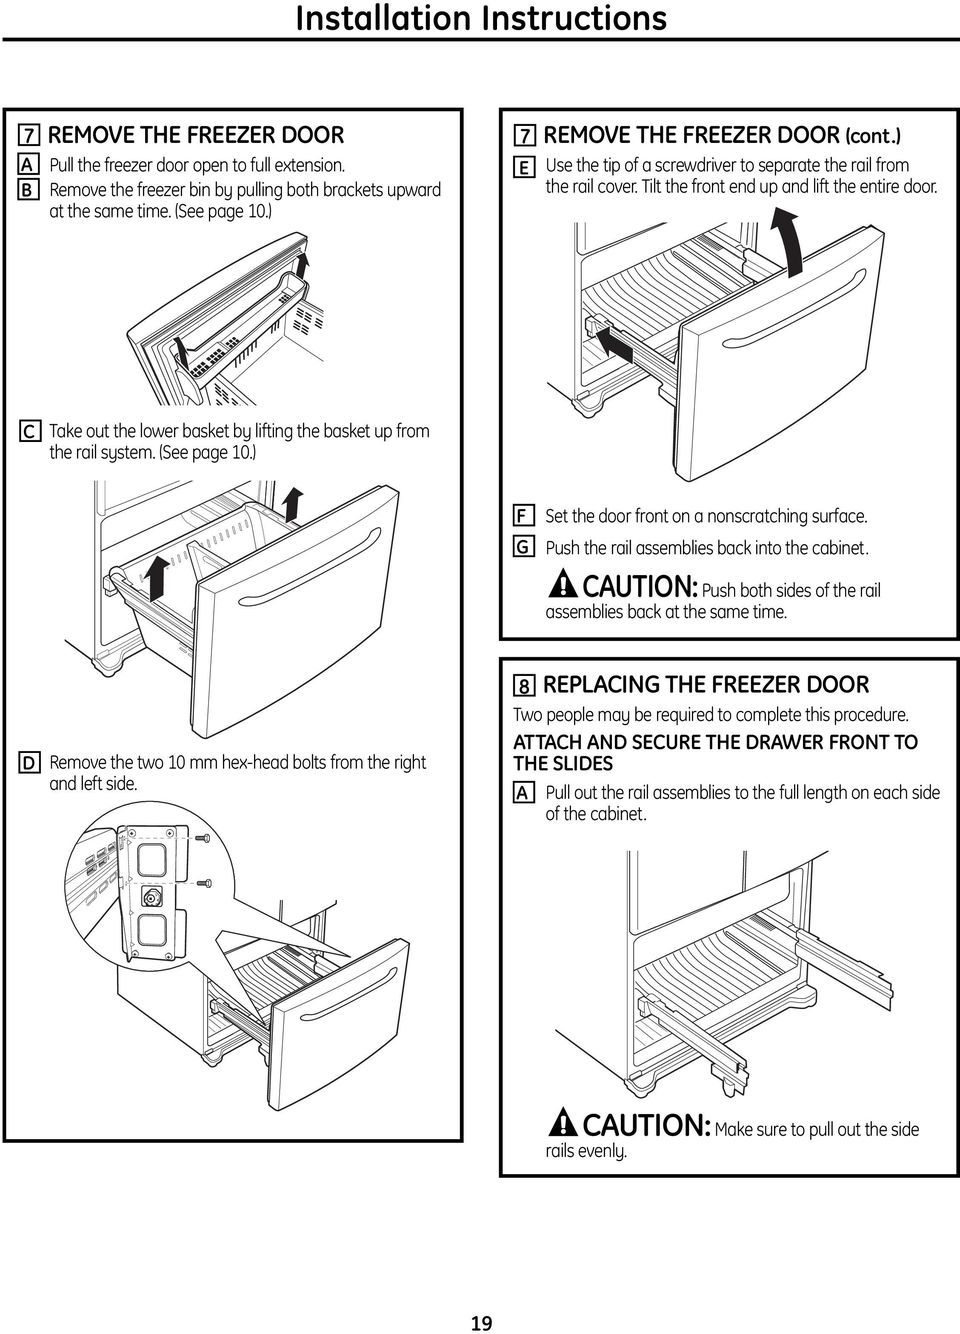 C Take out the lower basket by lifting the basket up from the rail system. (See page 10.) F G Set the door front on a nonscratching surface. Push the rail assemblies back into the cabinet.